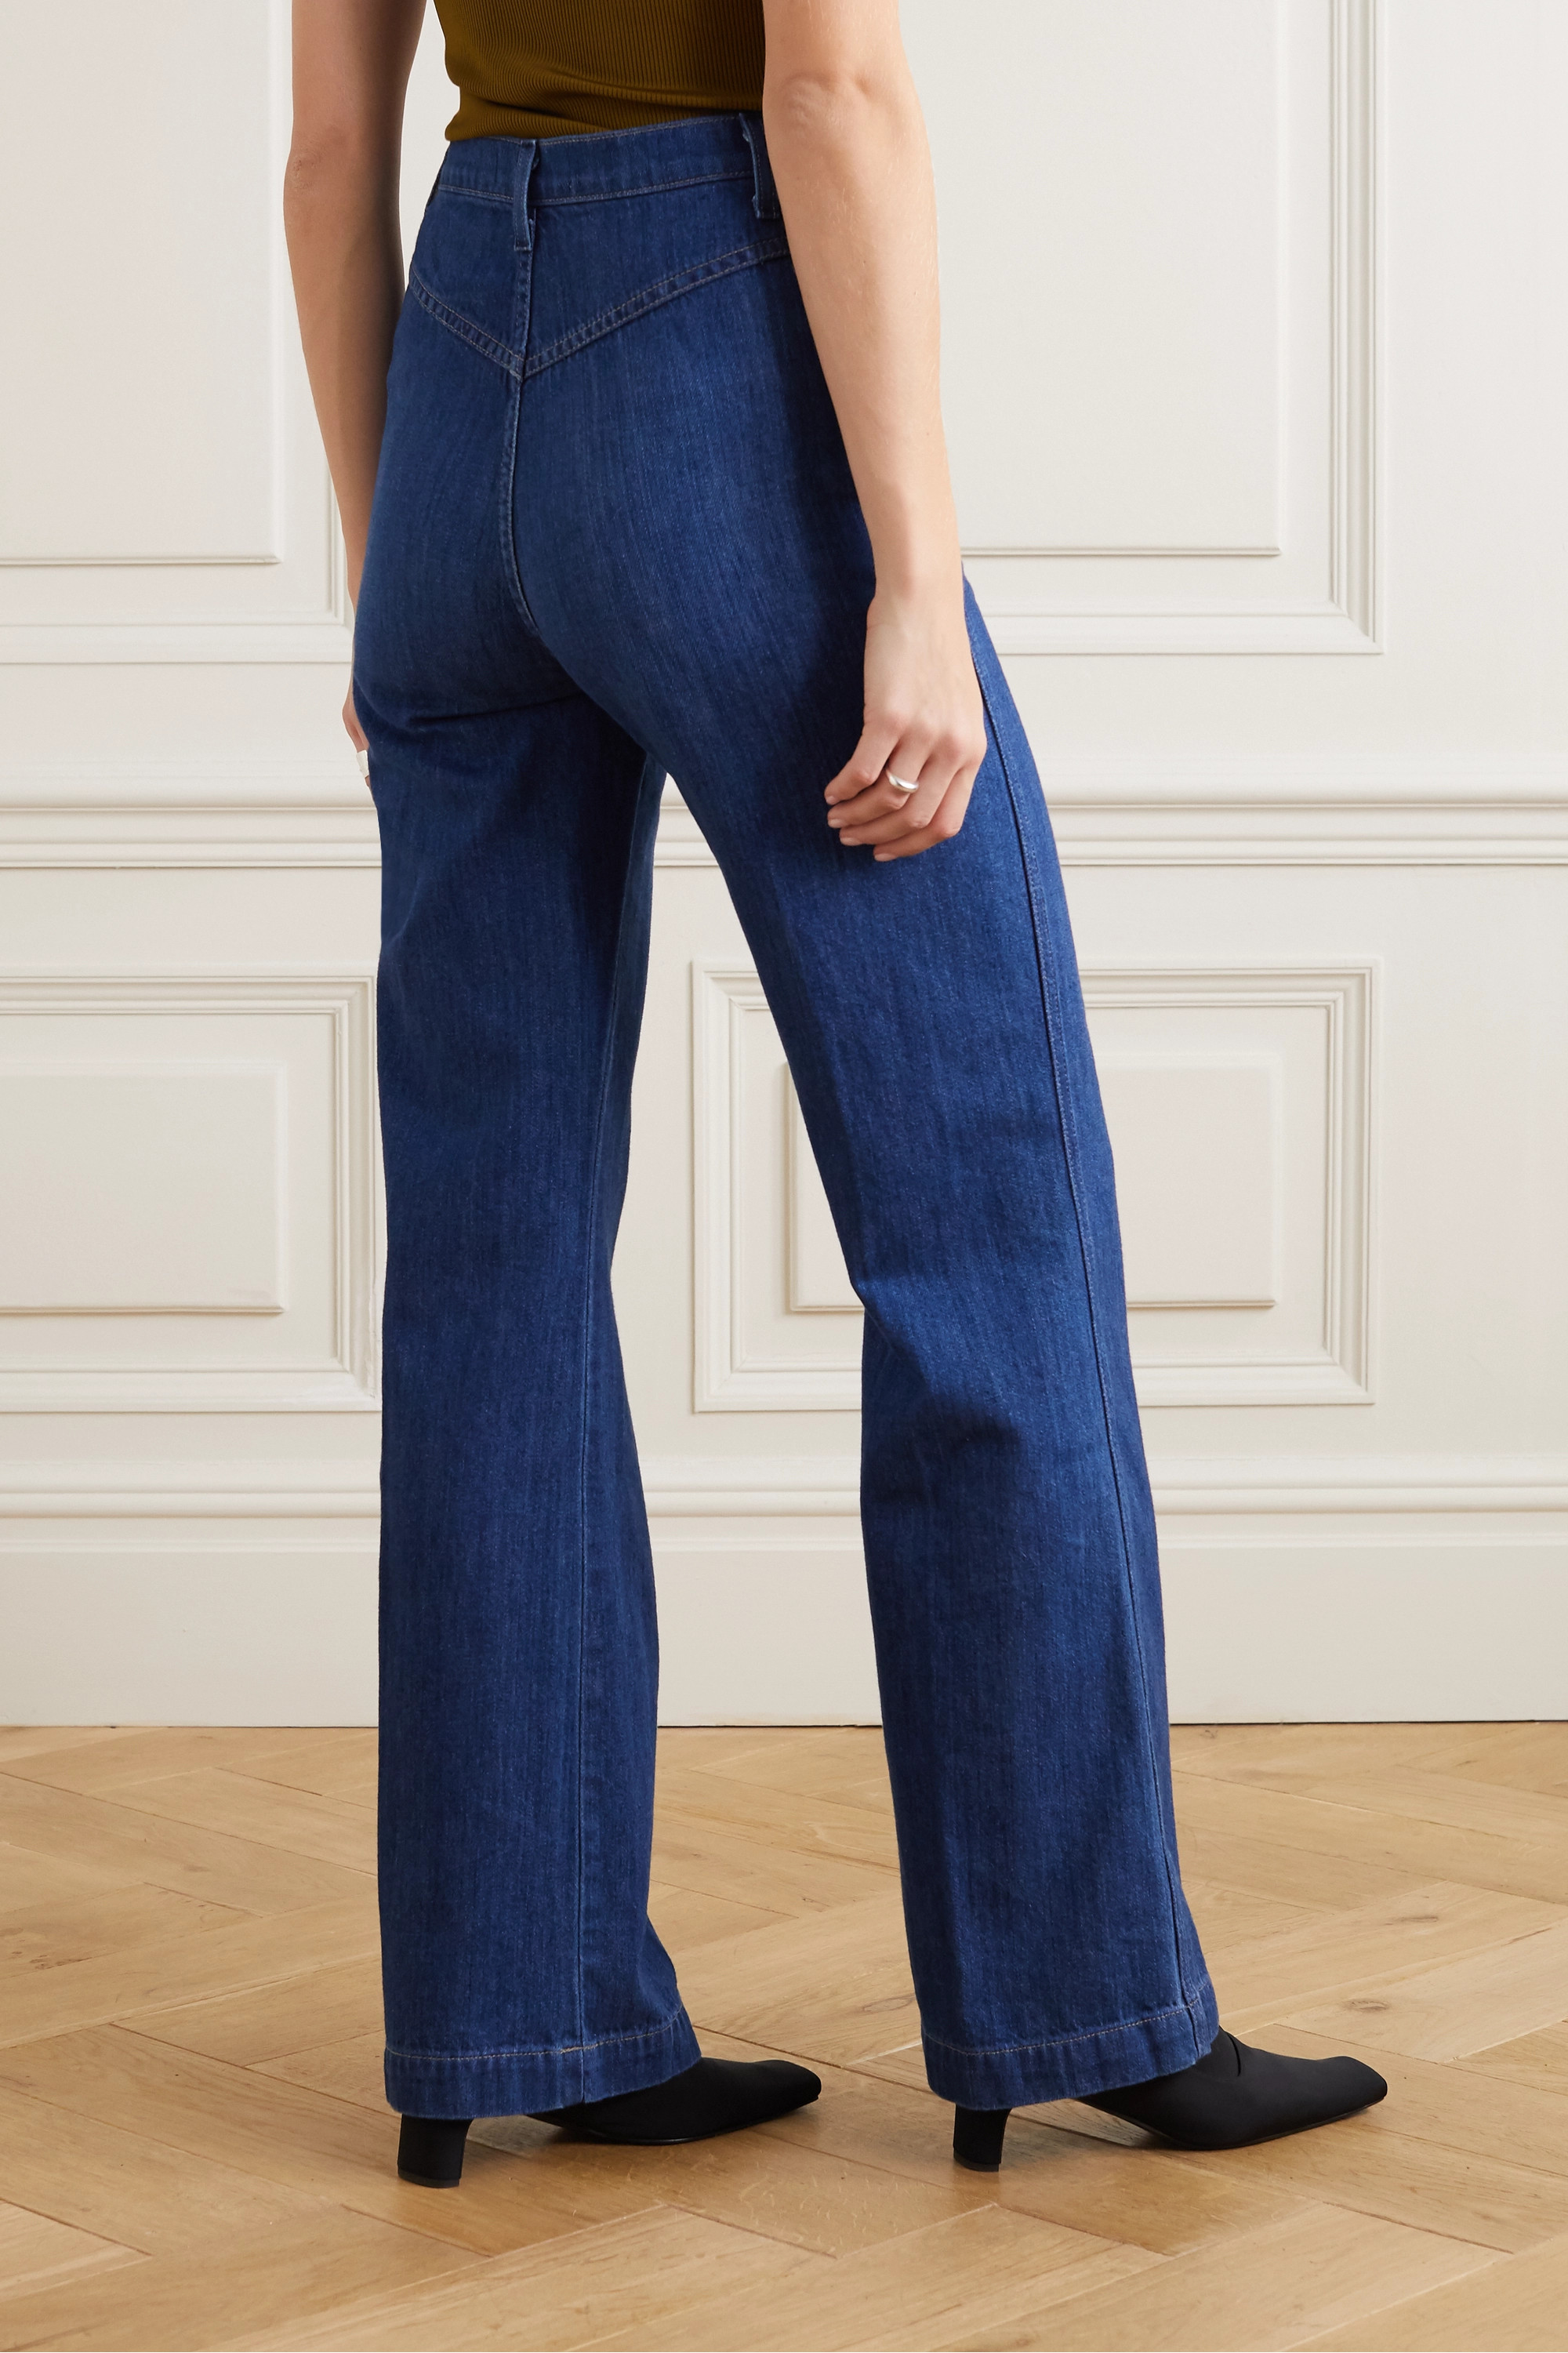 Reformation High-rise wide-leg jeans